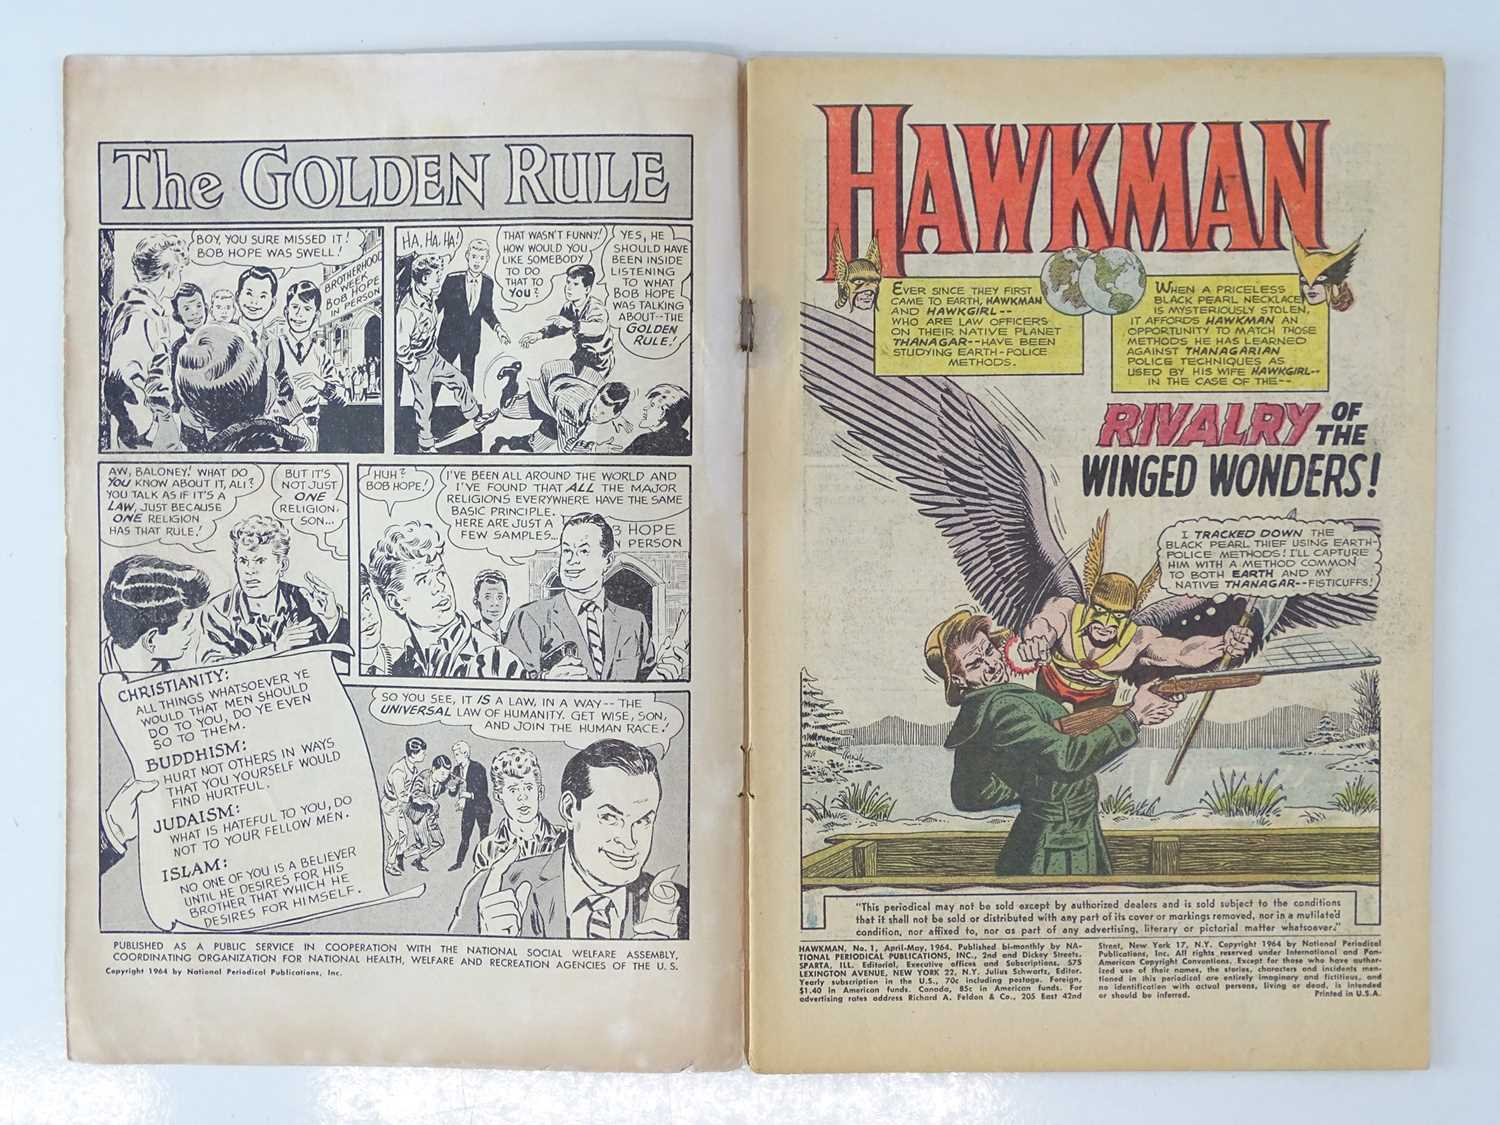 """HAWKMAN #1 - (DC - UK Cover Price) - First solo title for Hawkman gets after appearances in """"Brave - Image 3 of 9"""